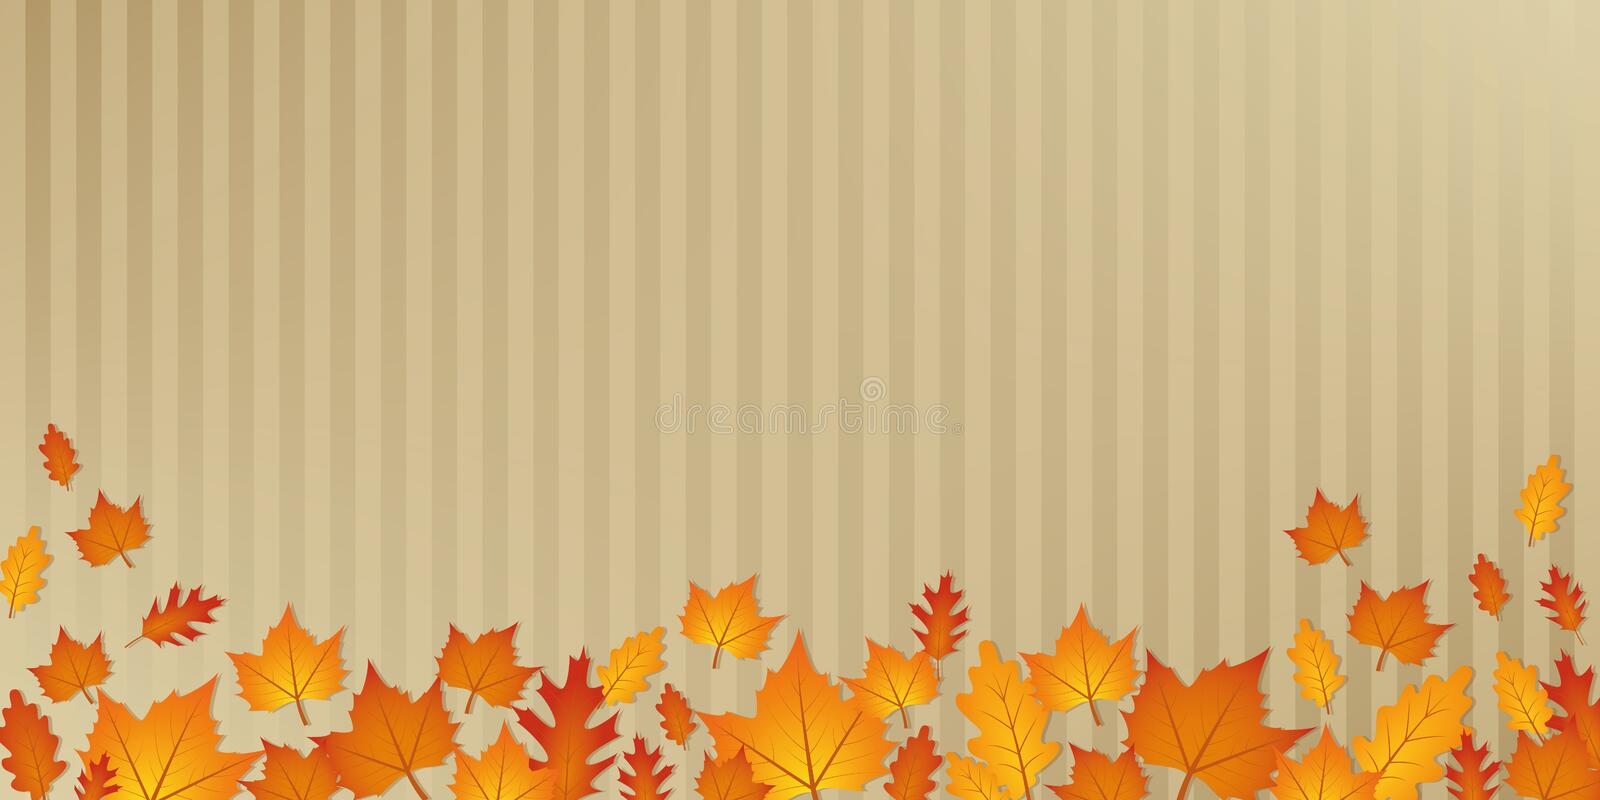 Autumn orange and yellow leaves on abstract paper background stock illustration